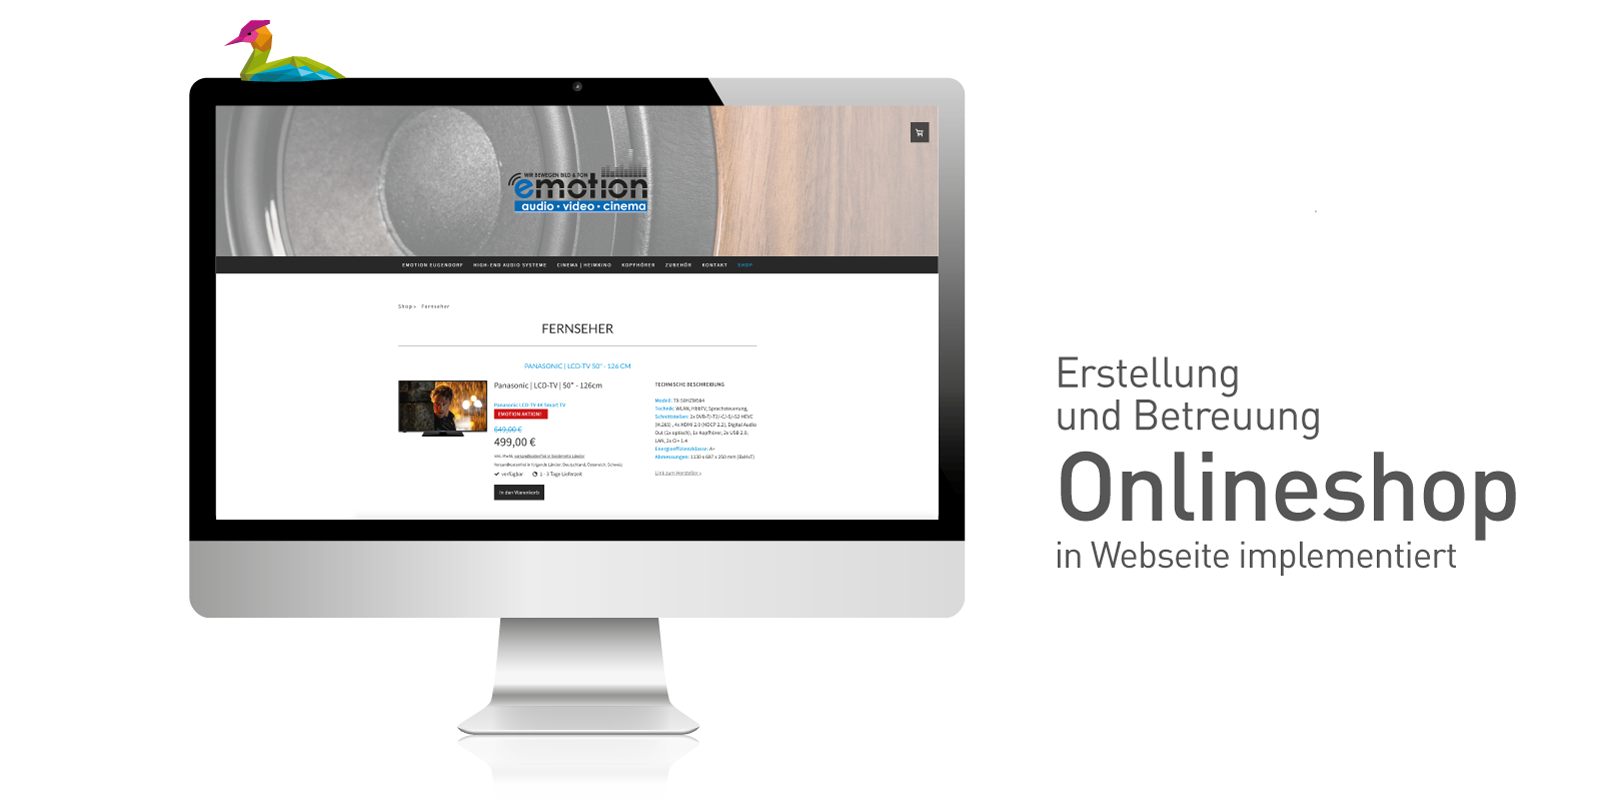 Emotion-Onlineshop